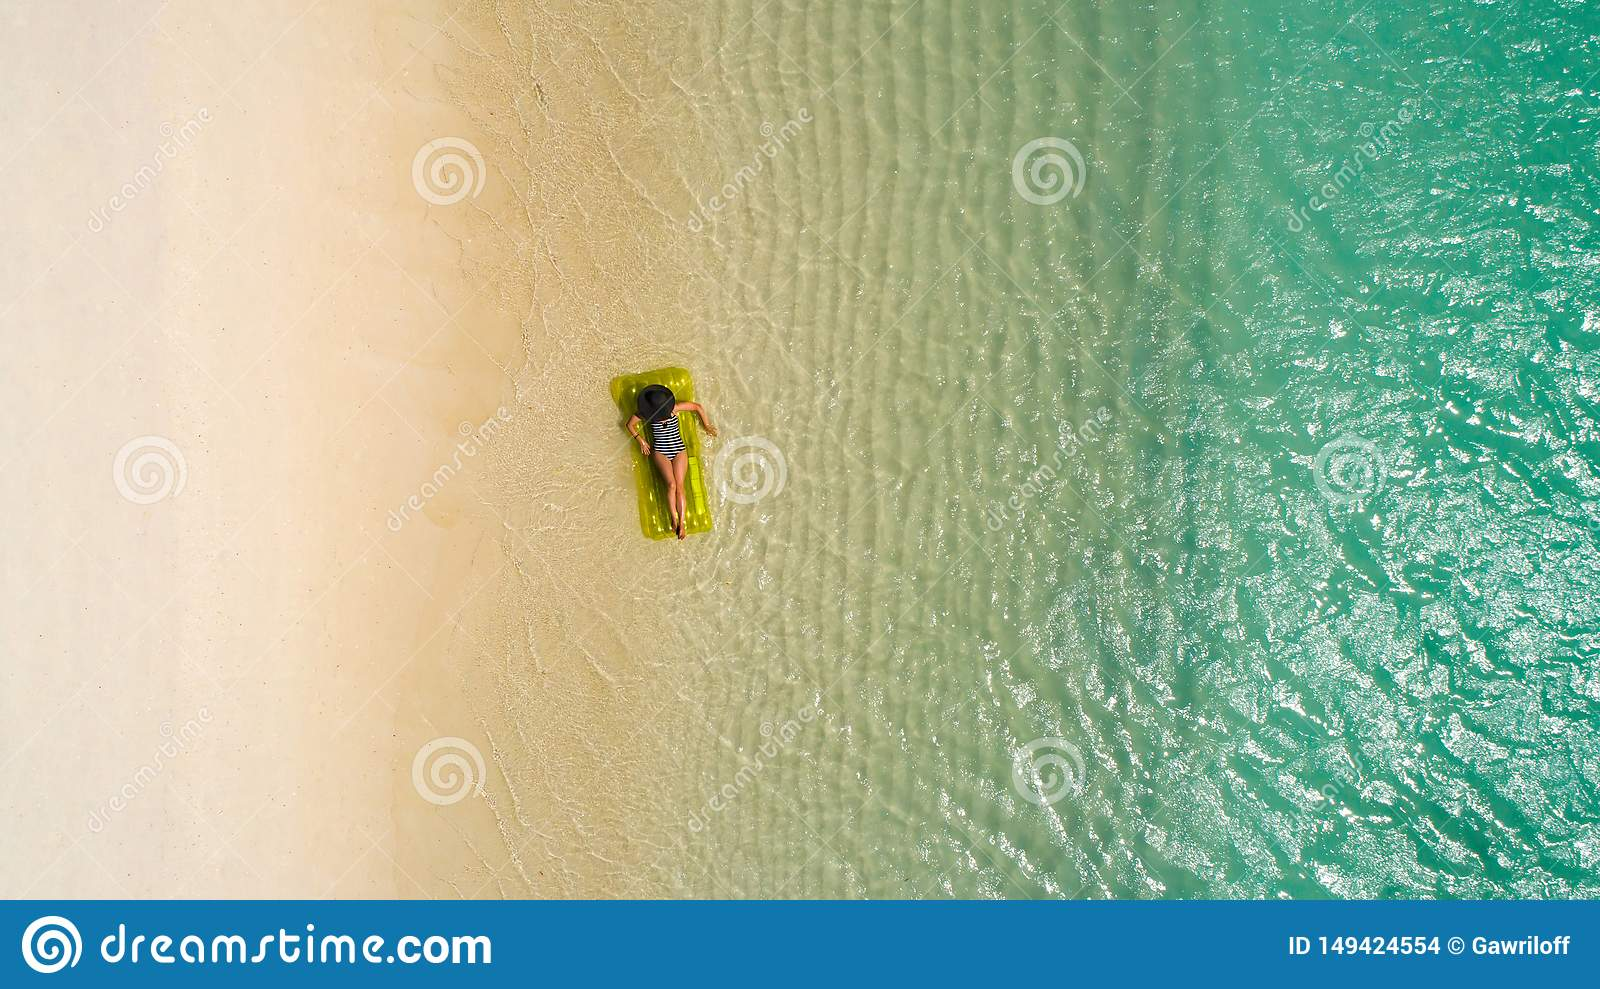 Aerial view of slim woman swimming on the swim mattress in the transparent turquoise sea in Seychelles. Summer seascape with girl